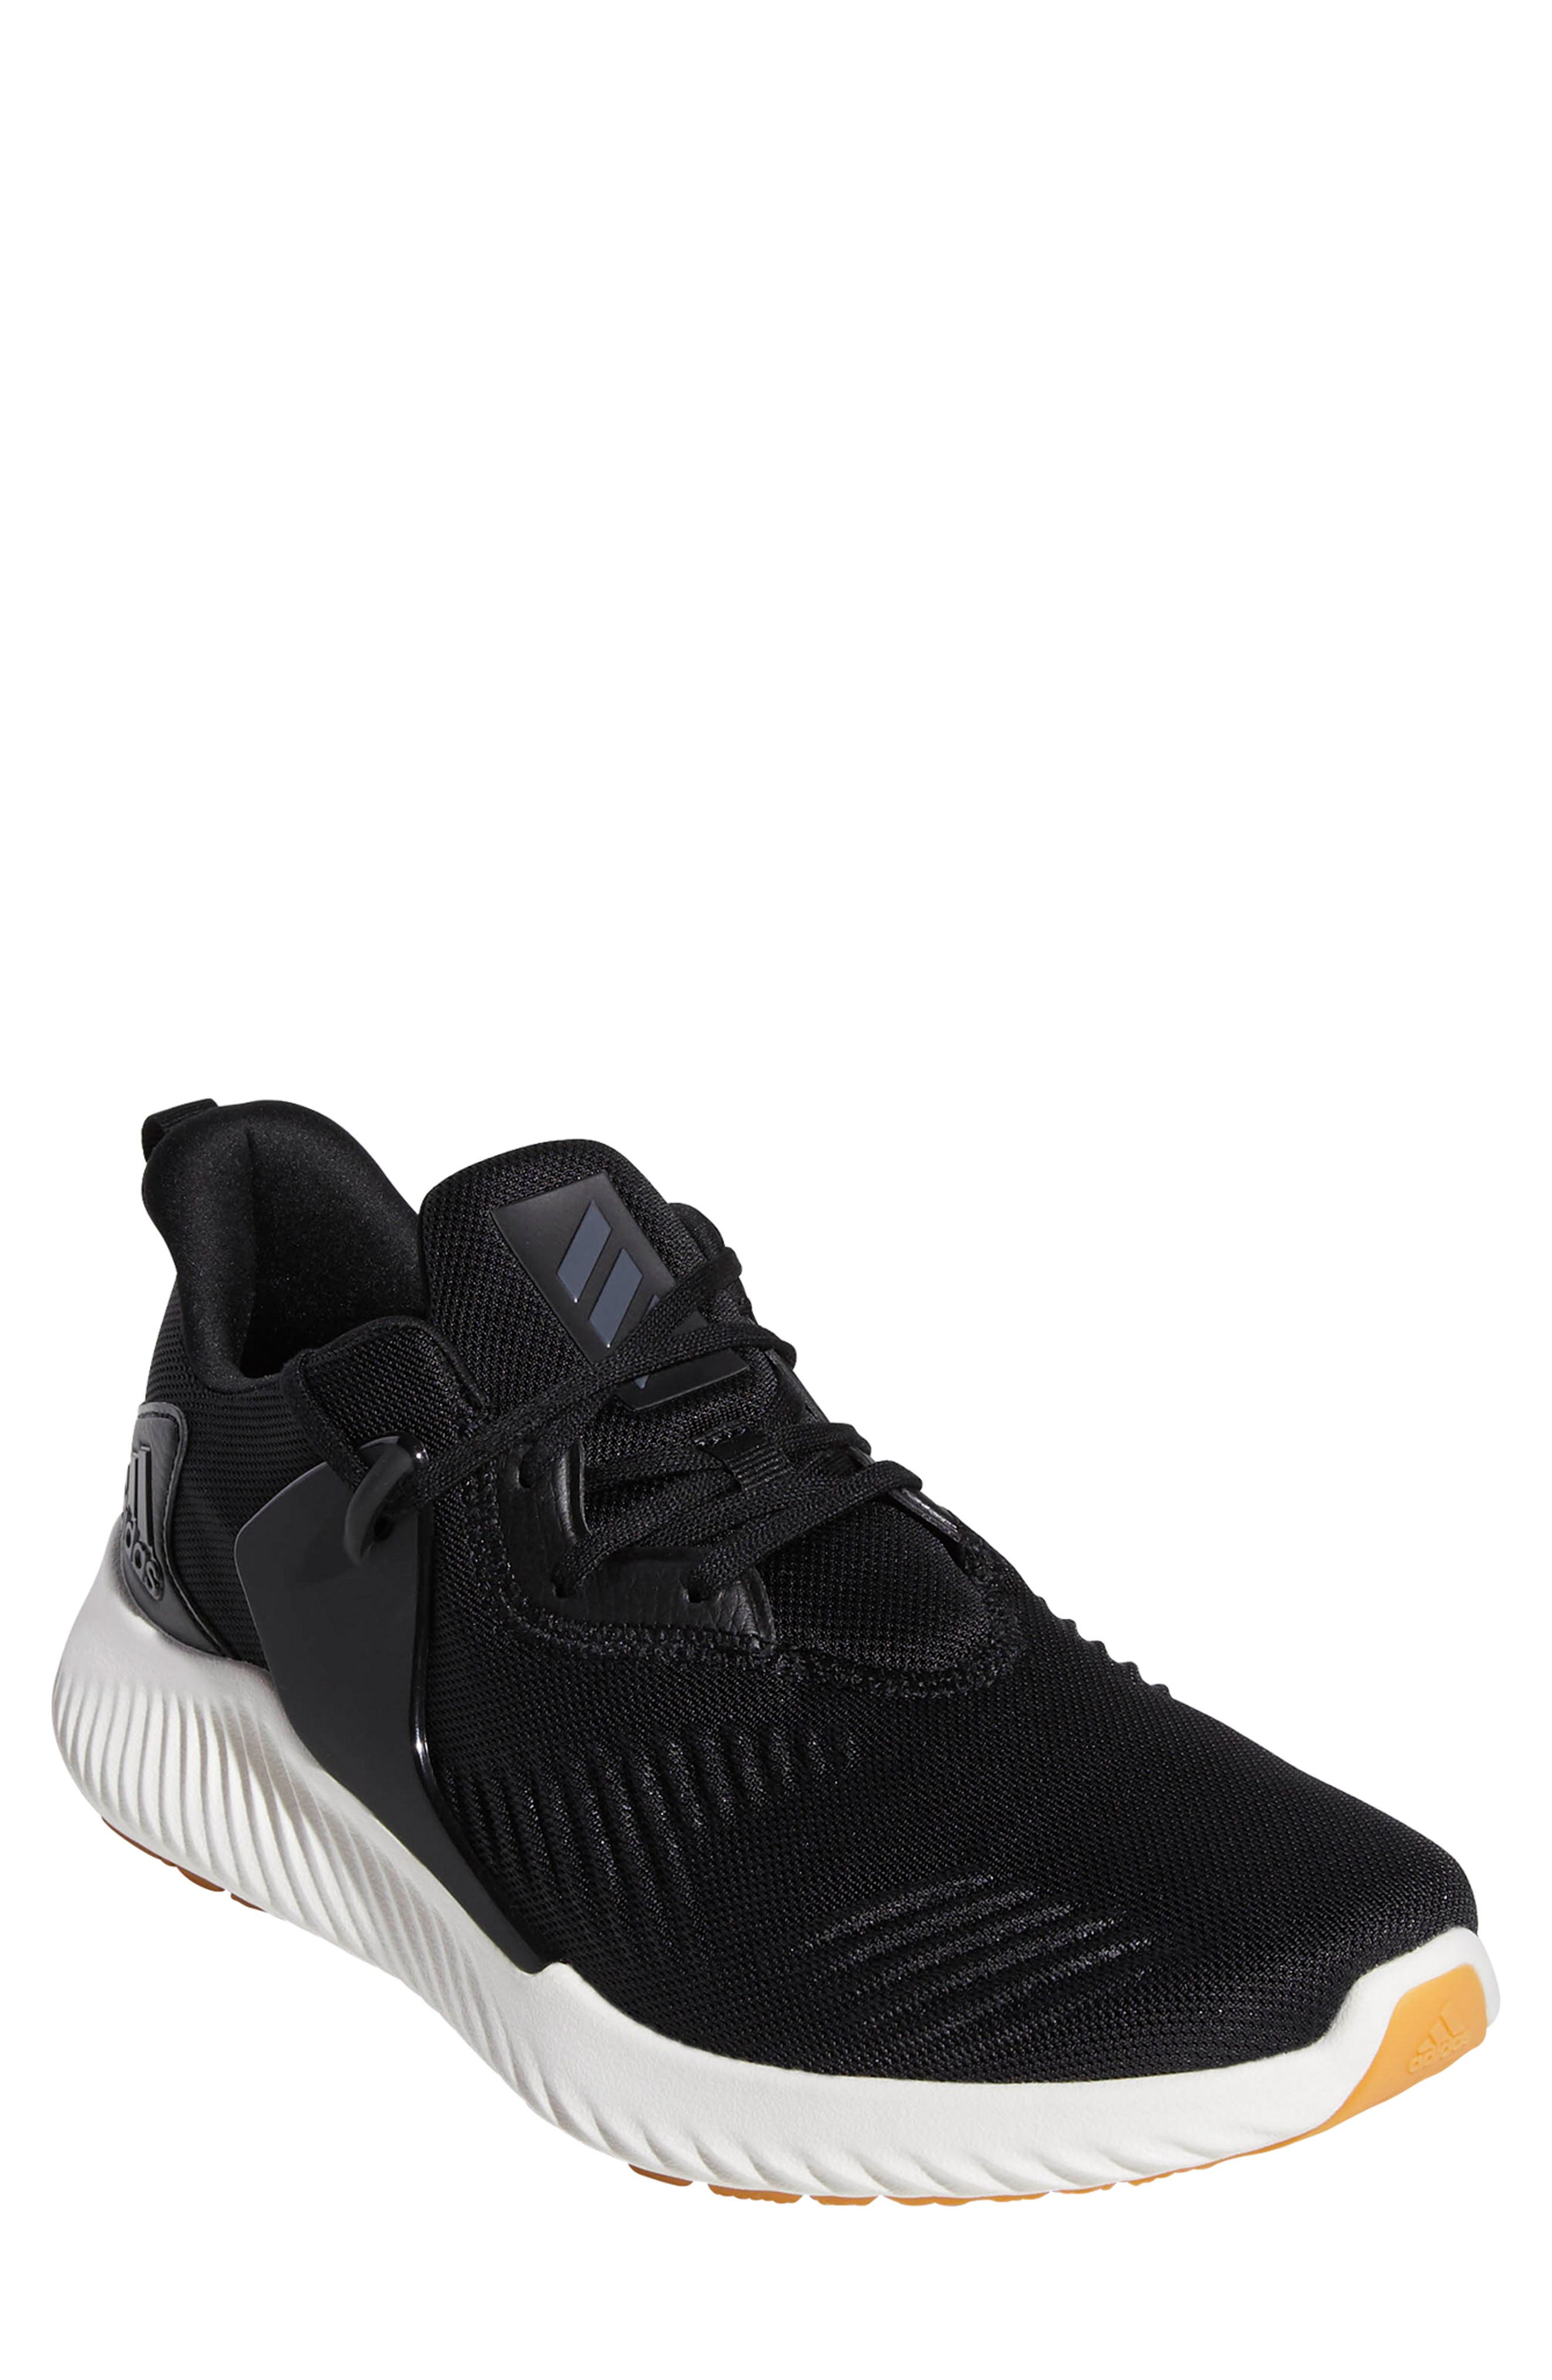 AlphaBounce RC 2 Running Shoe, Main, color, CORE BLACK/ NIGHT/ CORE BLACK